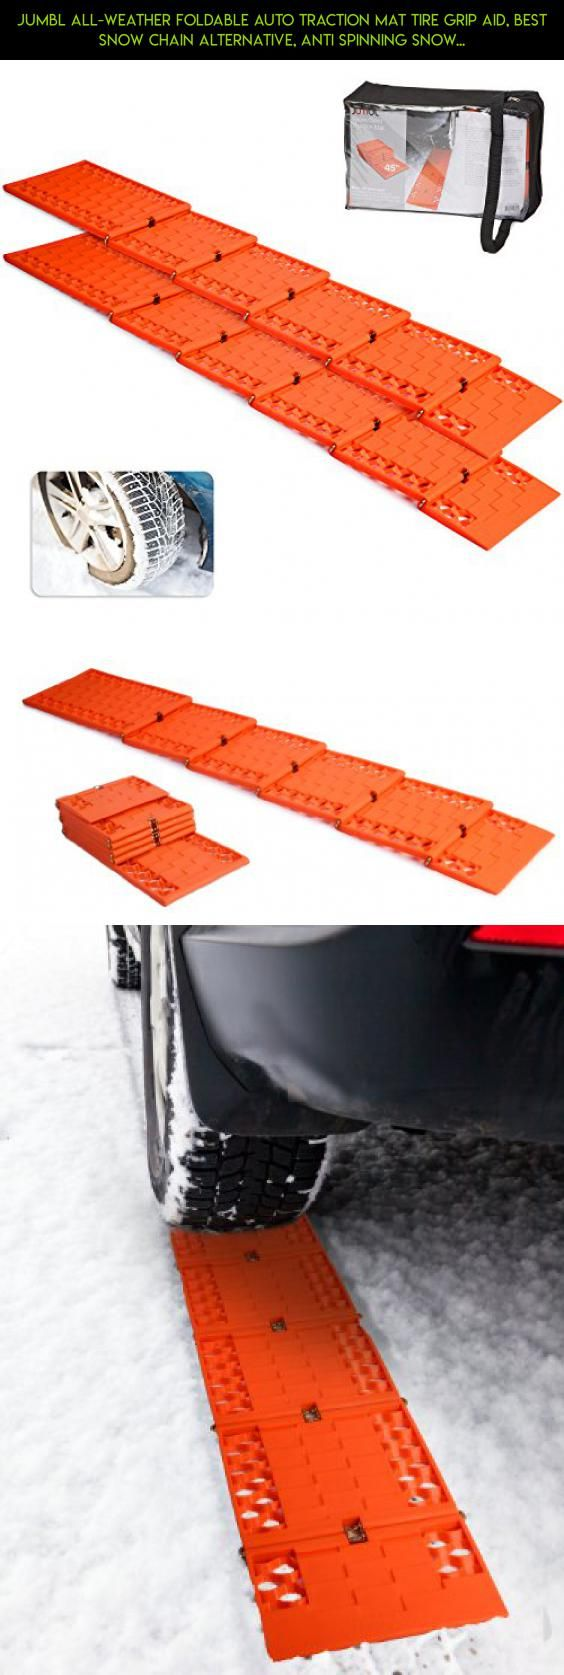 Jumbl All-Weather Foldable Auto Traction Mat Tire Grip Aid, Best Snow Chain Alternative, Anti Spinning Snow Grabber, Ideal To Unstuck Your Car From Snow, Ice, and Mud, w Bonus Storage Pouch (2 Pack) #camera #gadgets #shopping #storage #technology #fpv #drone #products #racing #pouch #plans #parts #tech #kit